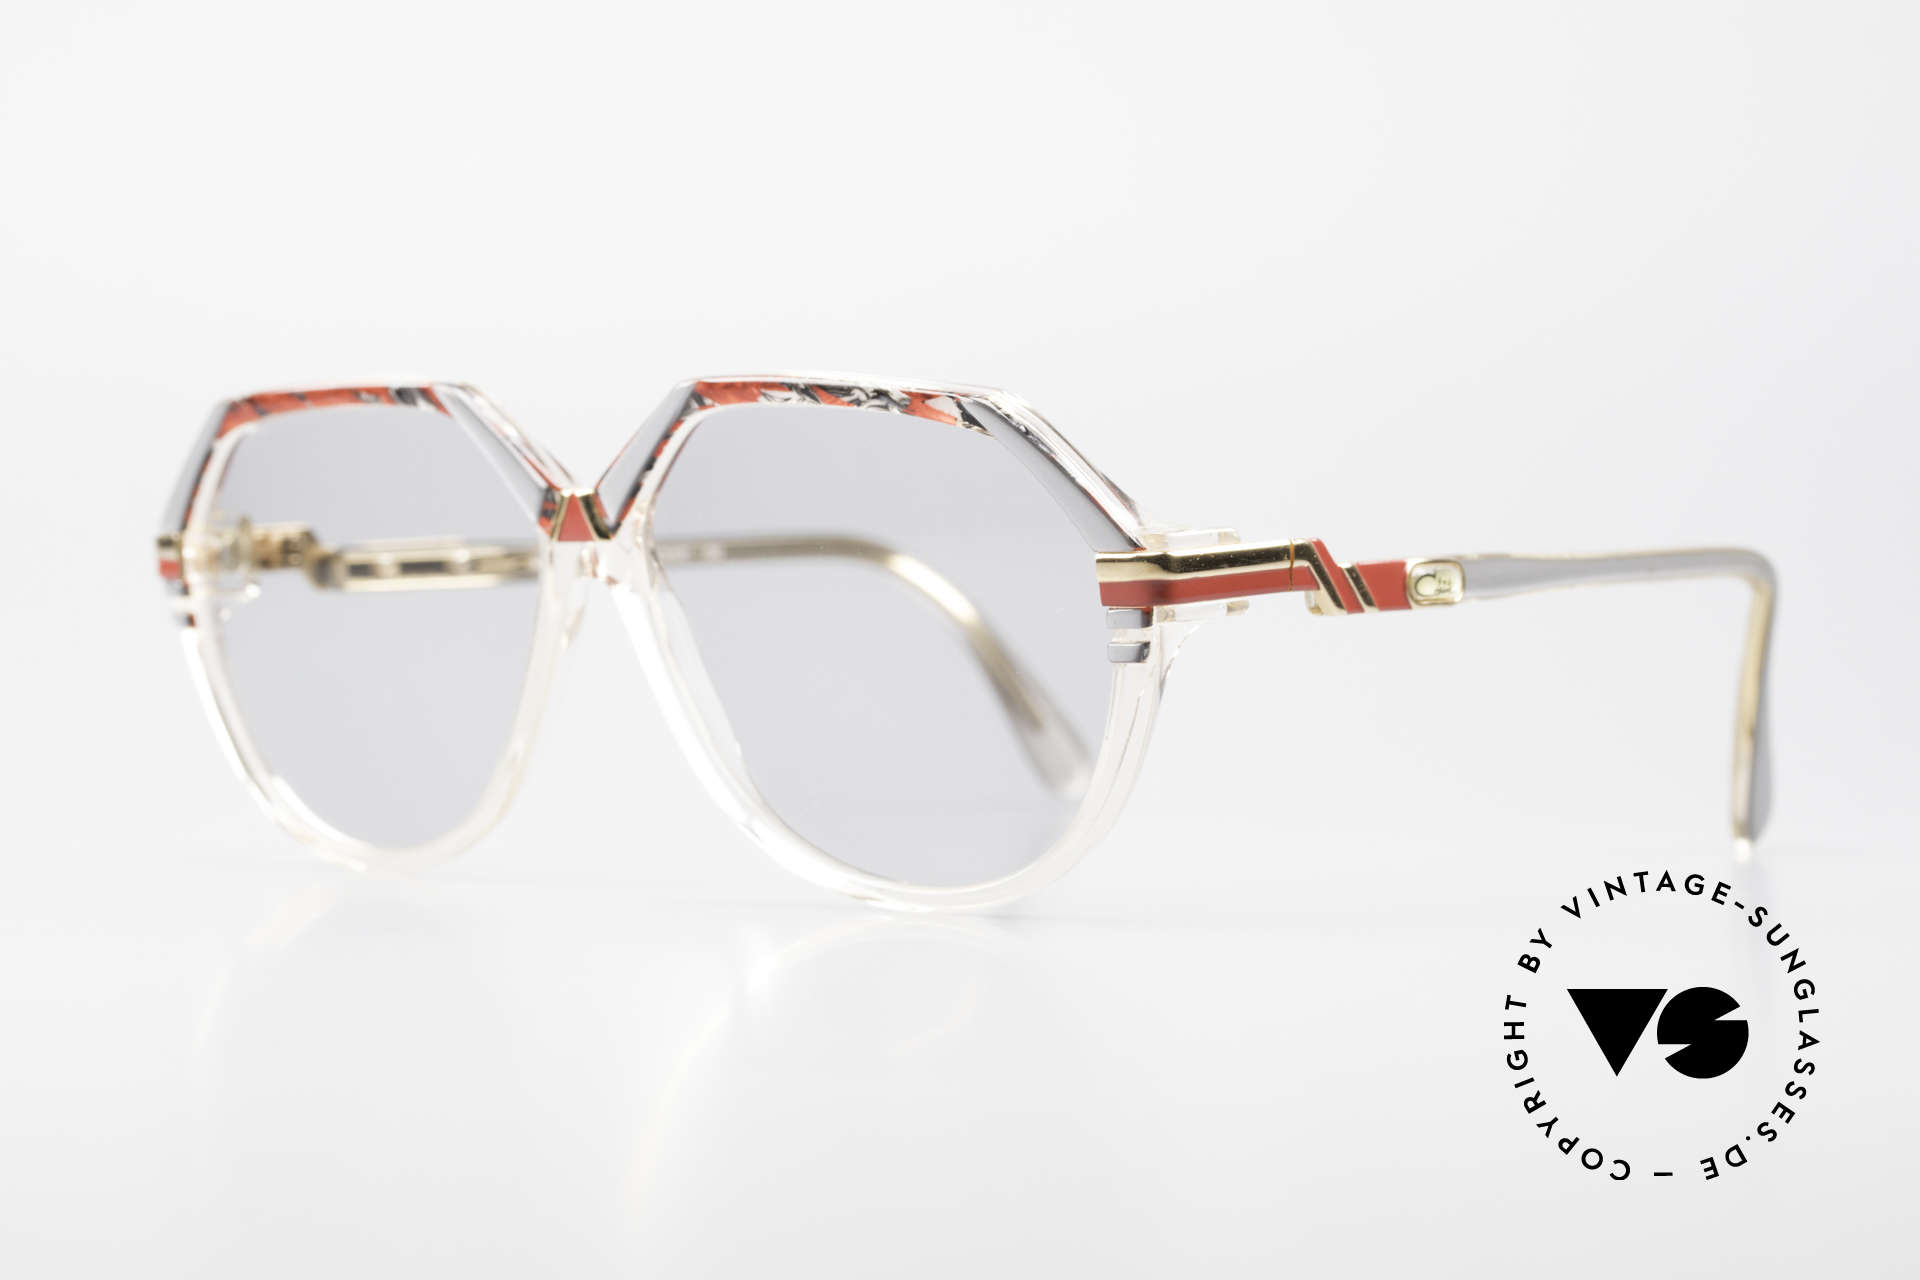 Cazal 317 Old 80's Cazal West Germany, never worn (like all our vintage Cazal sunglasses), Made for Men and Women